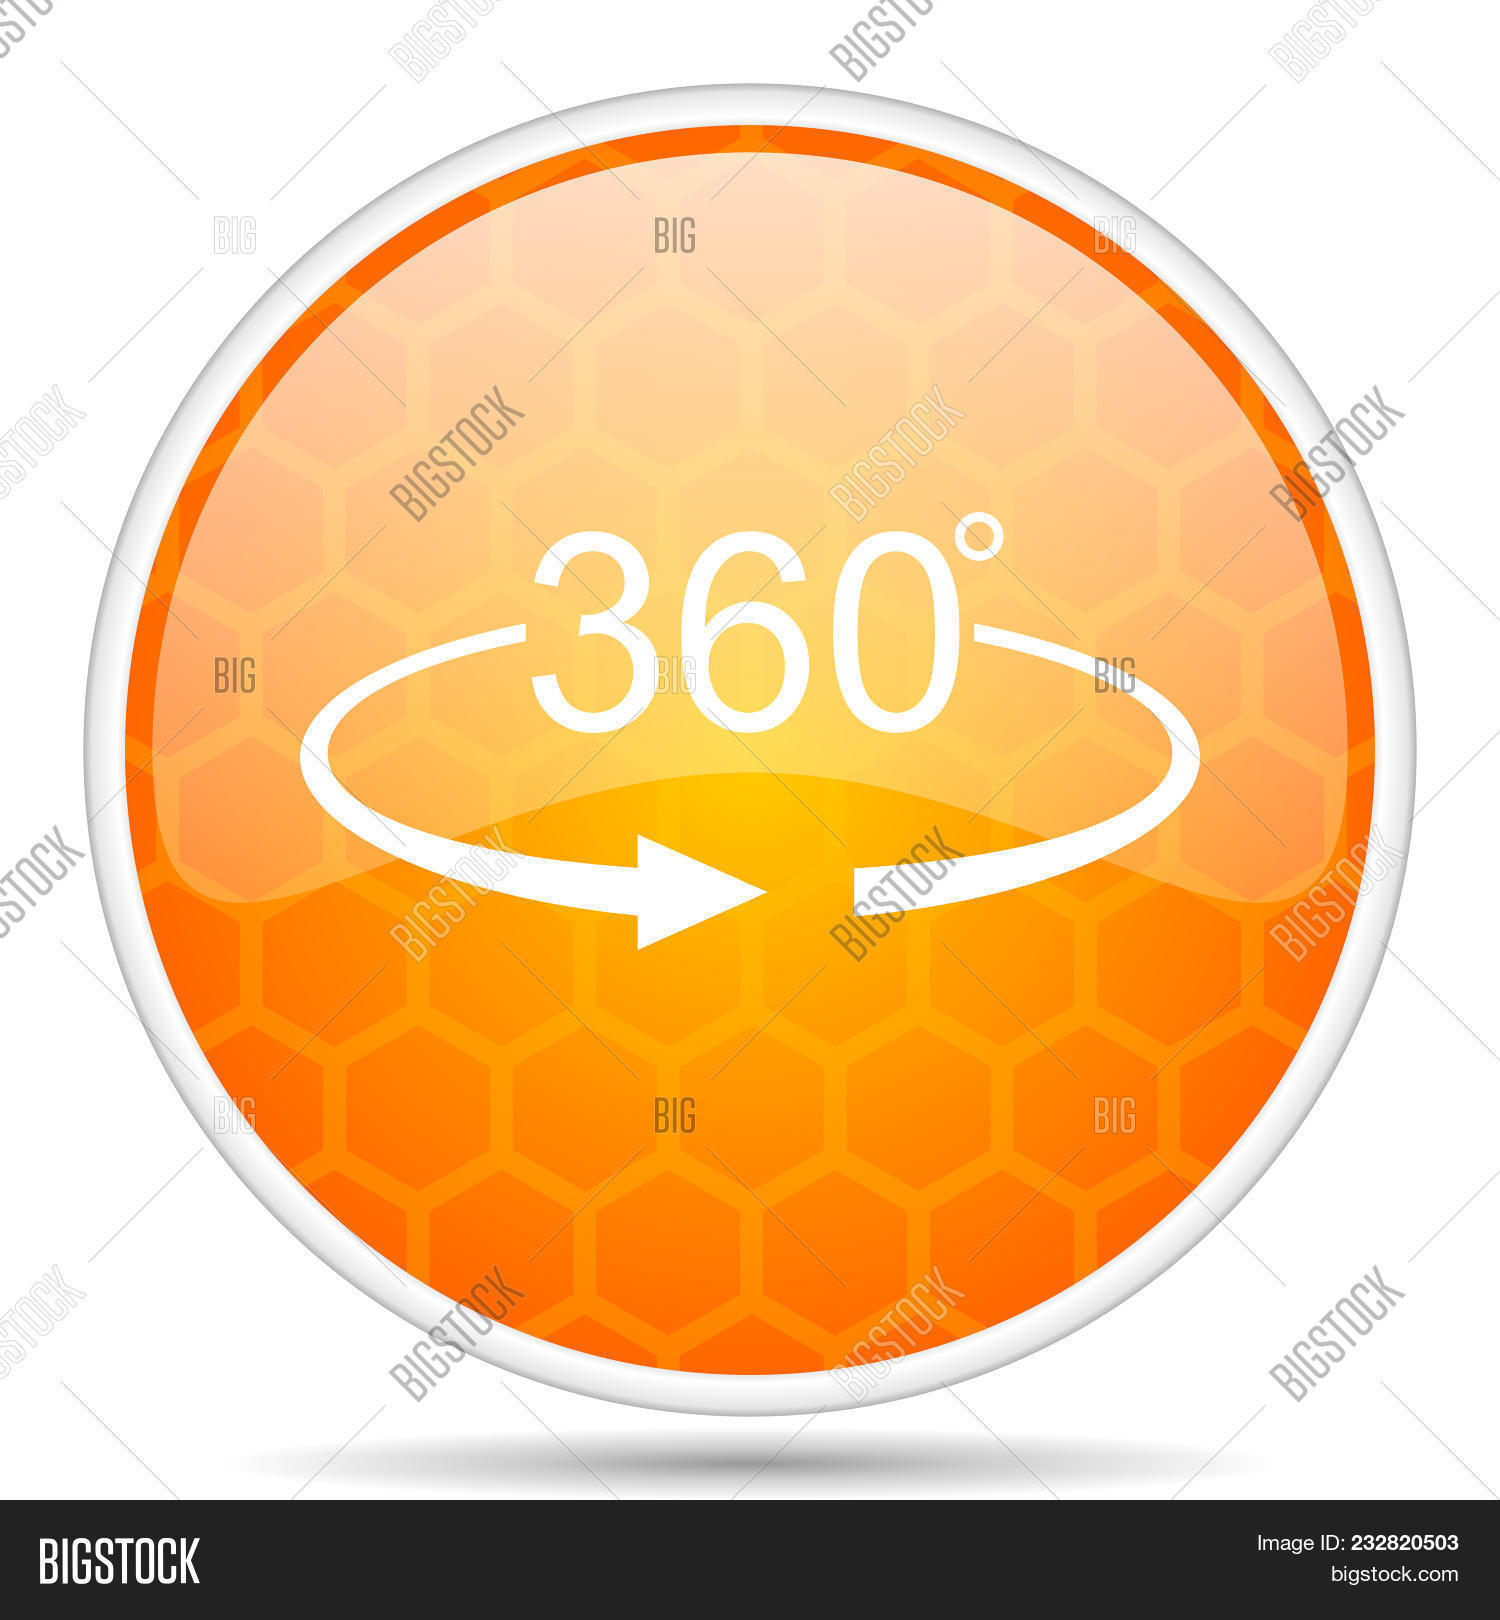 Panorama 360 web icon. Round orange glossy internet button for webdesign.